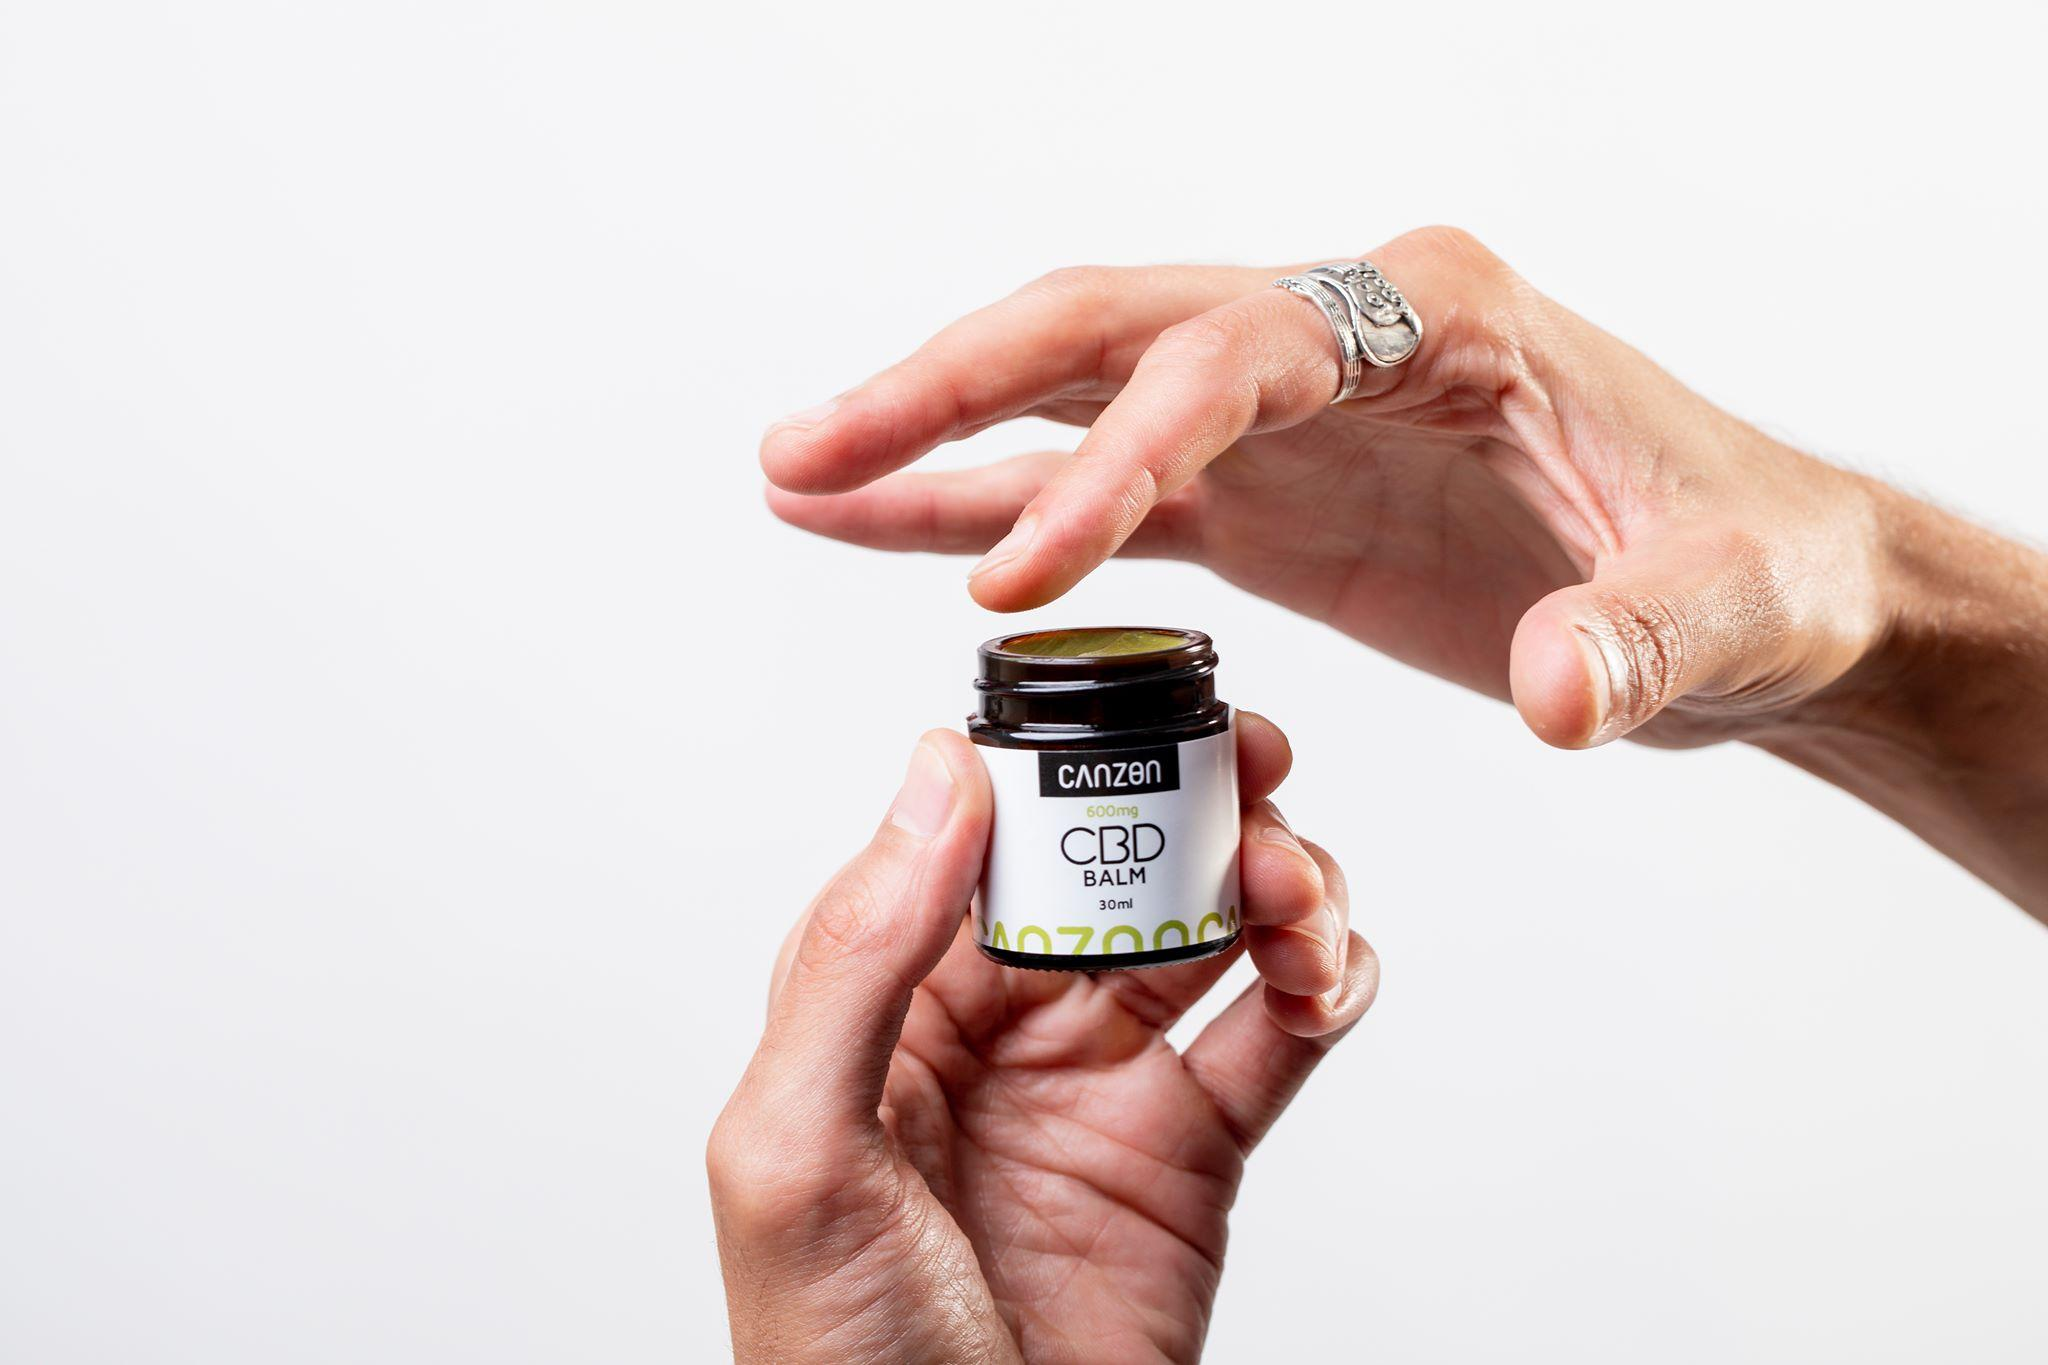 What to Check before Buying CBD_1